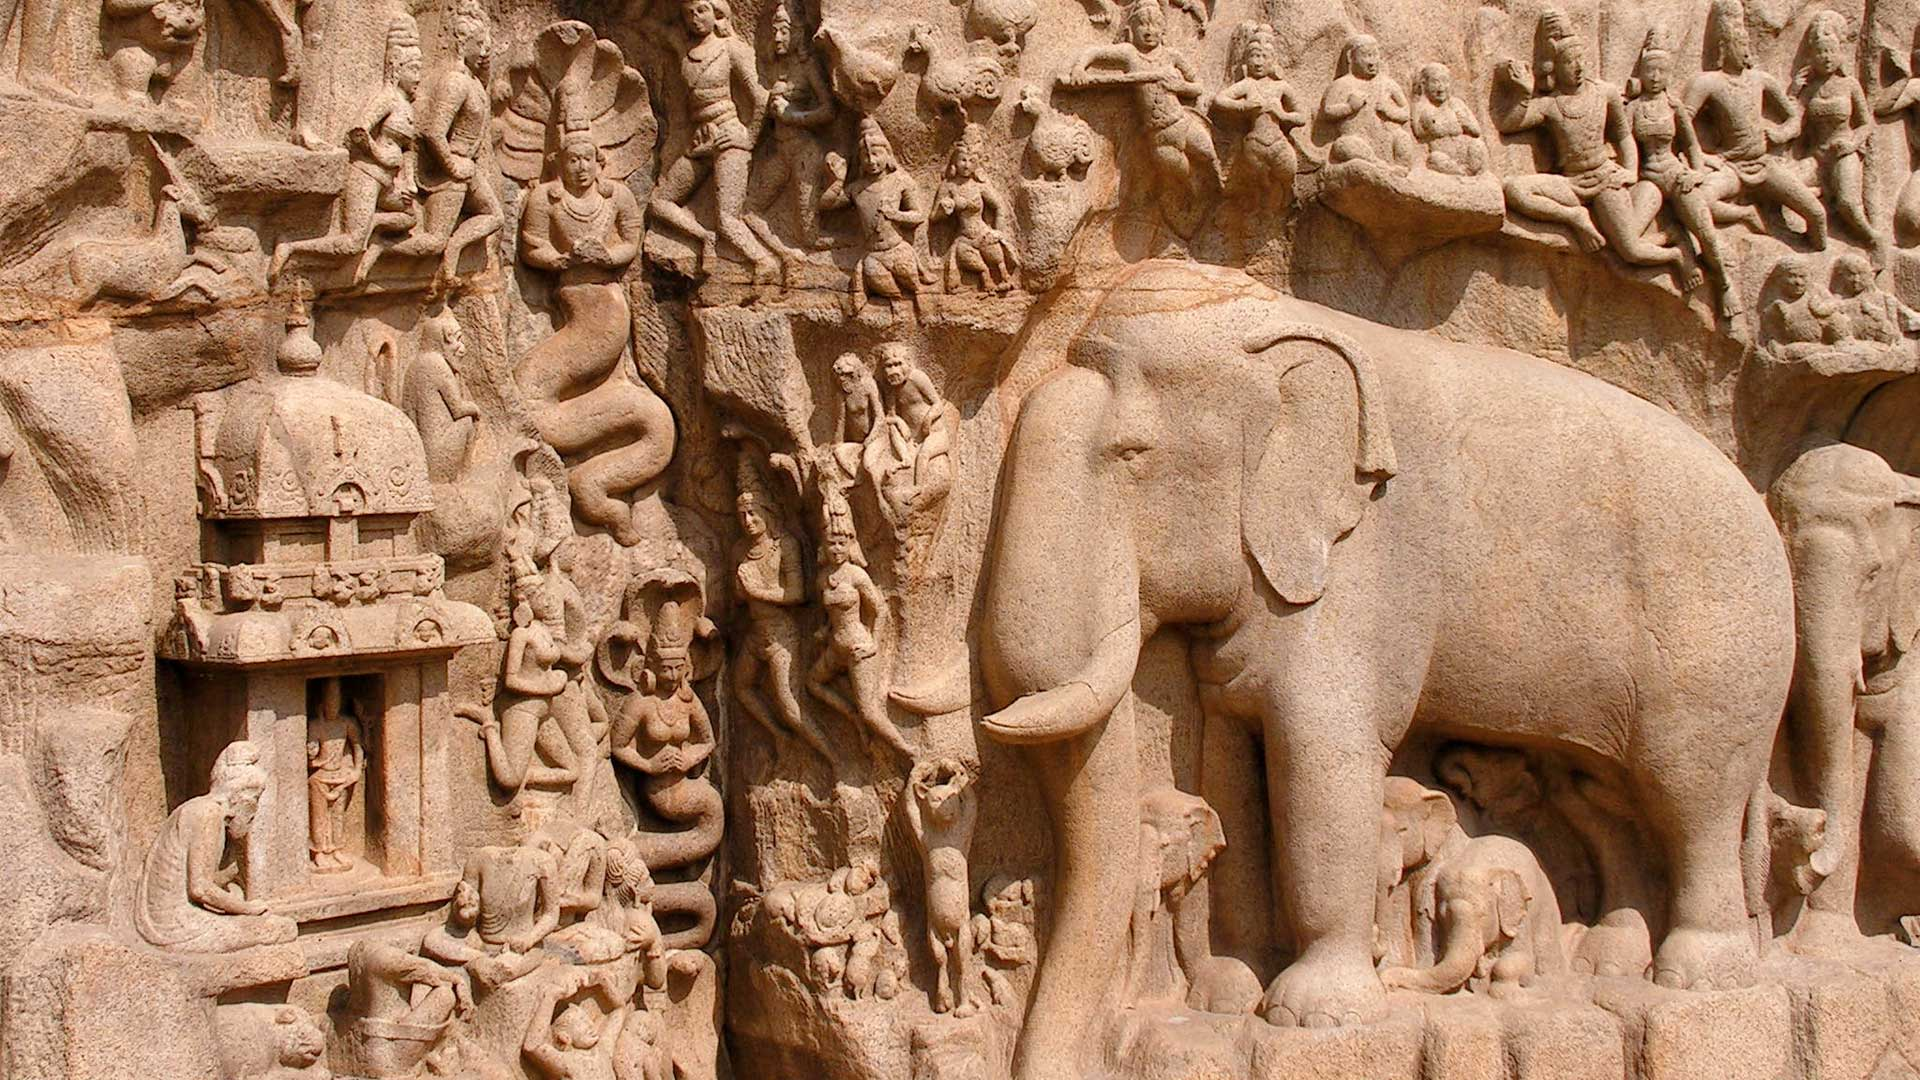 Intricate carvings depicting the descent of the Ganga in Mamallapuram, India with GeoEx